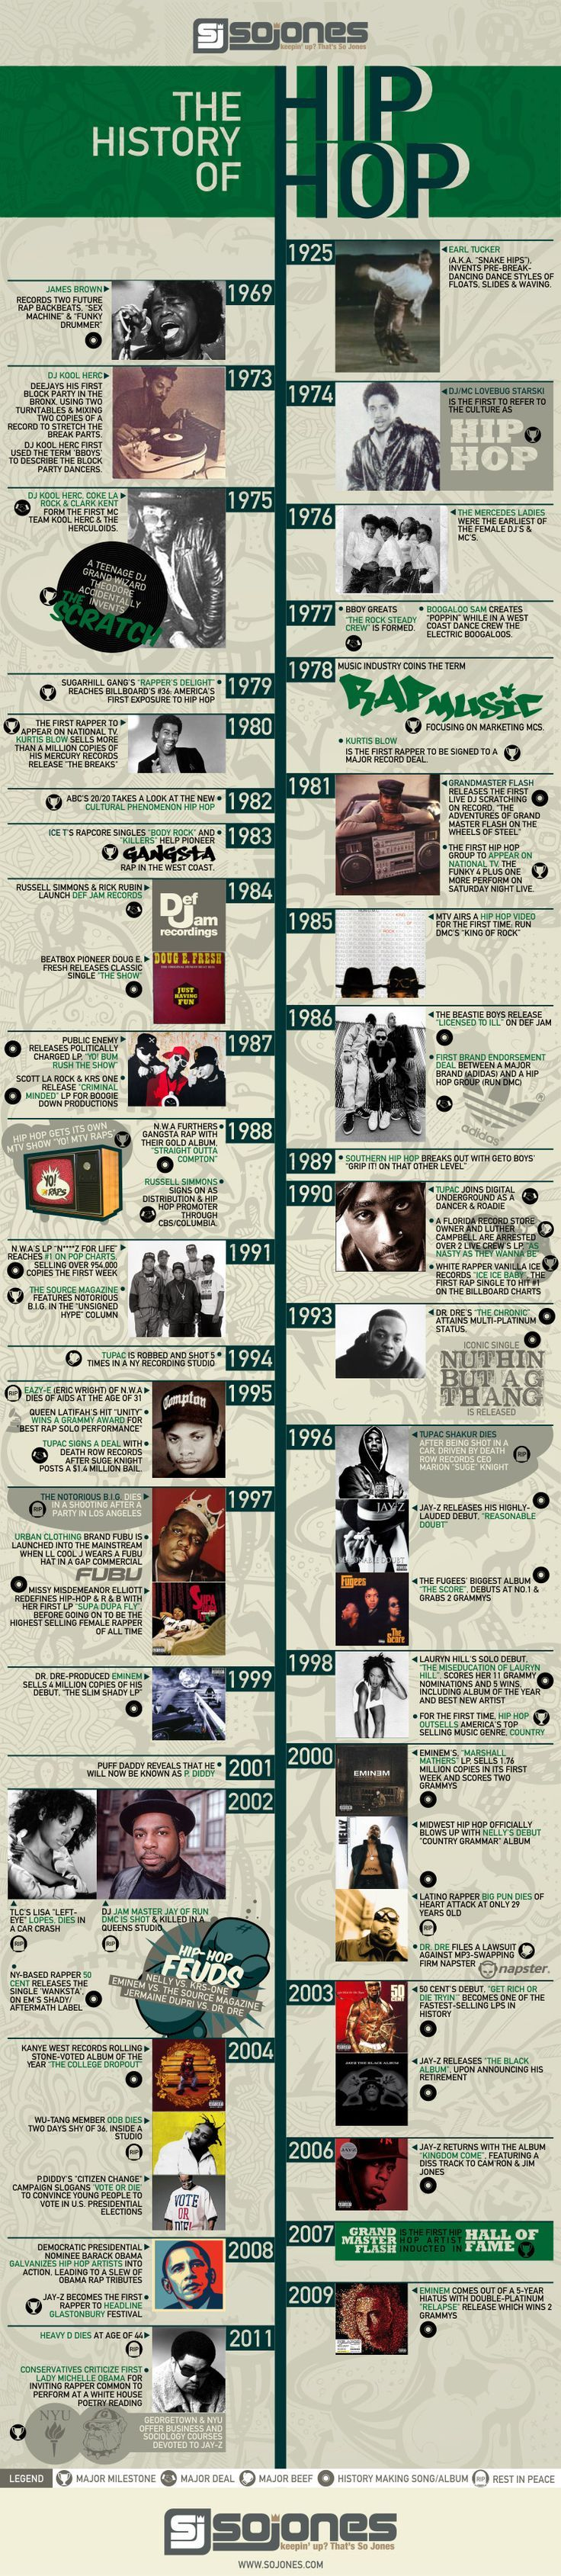 The History Of Hip Hop From 1925 to 2015